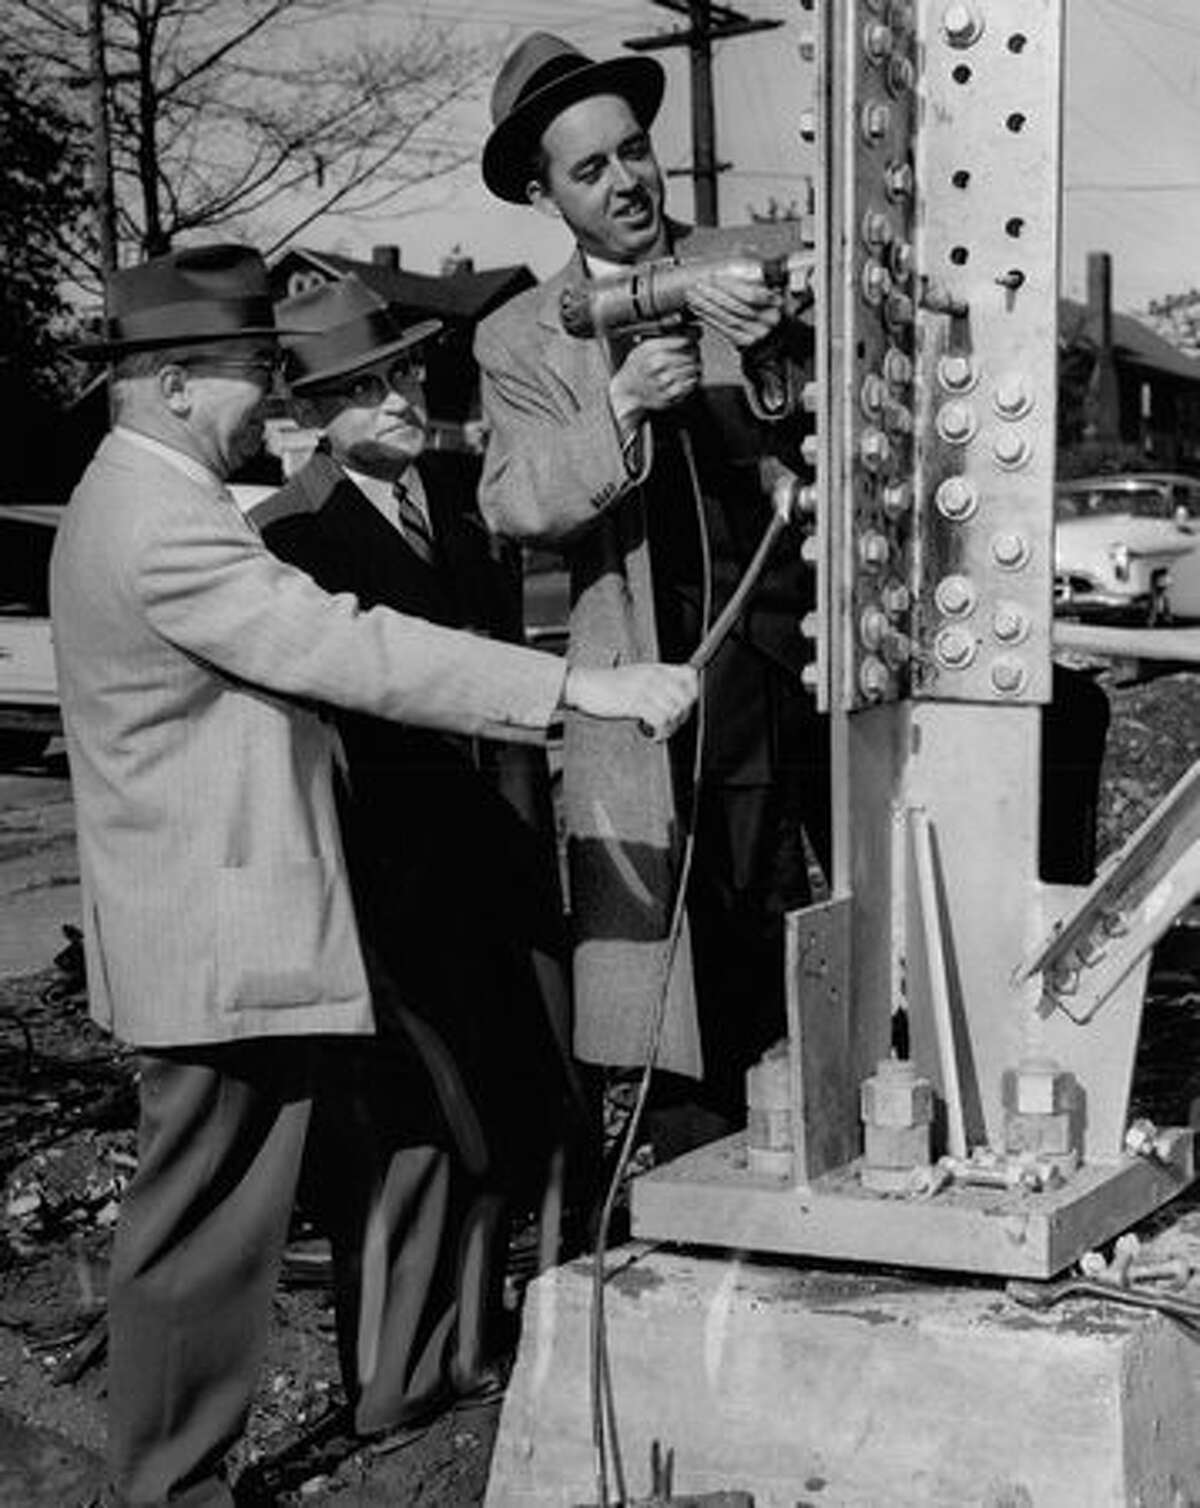 Otto Brendt, general manager of the King Broadcasting Company operates a power wrench on bolts of the KING television tower, November 1953.